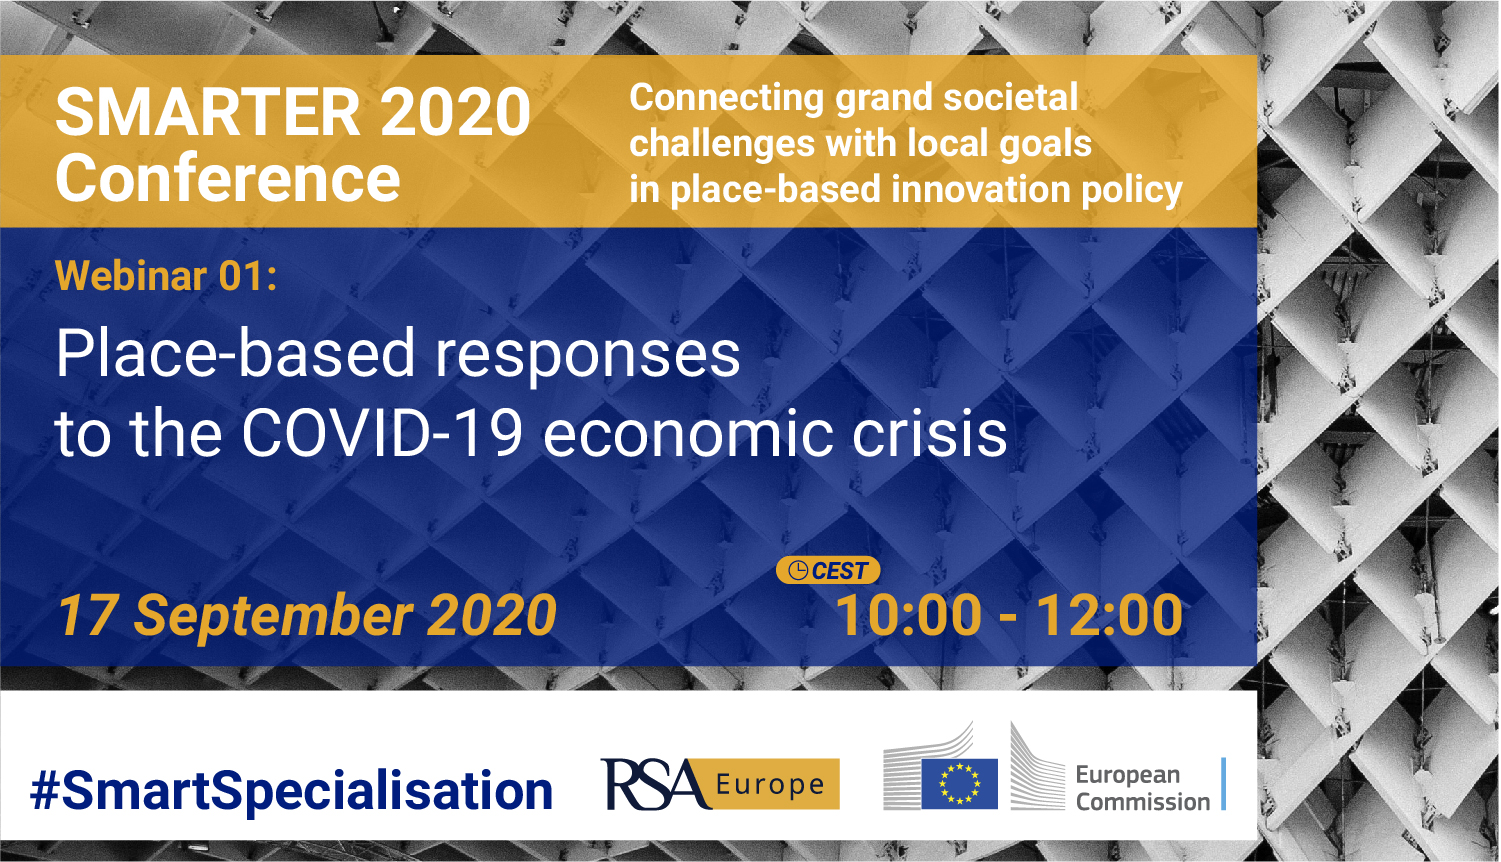 Smart 2020 Conference: Place-based responses to the COVID-19 economic crisis